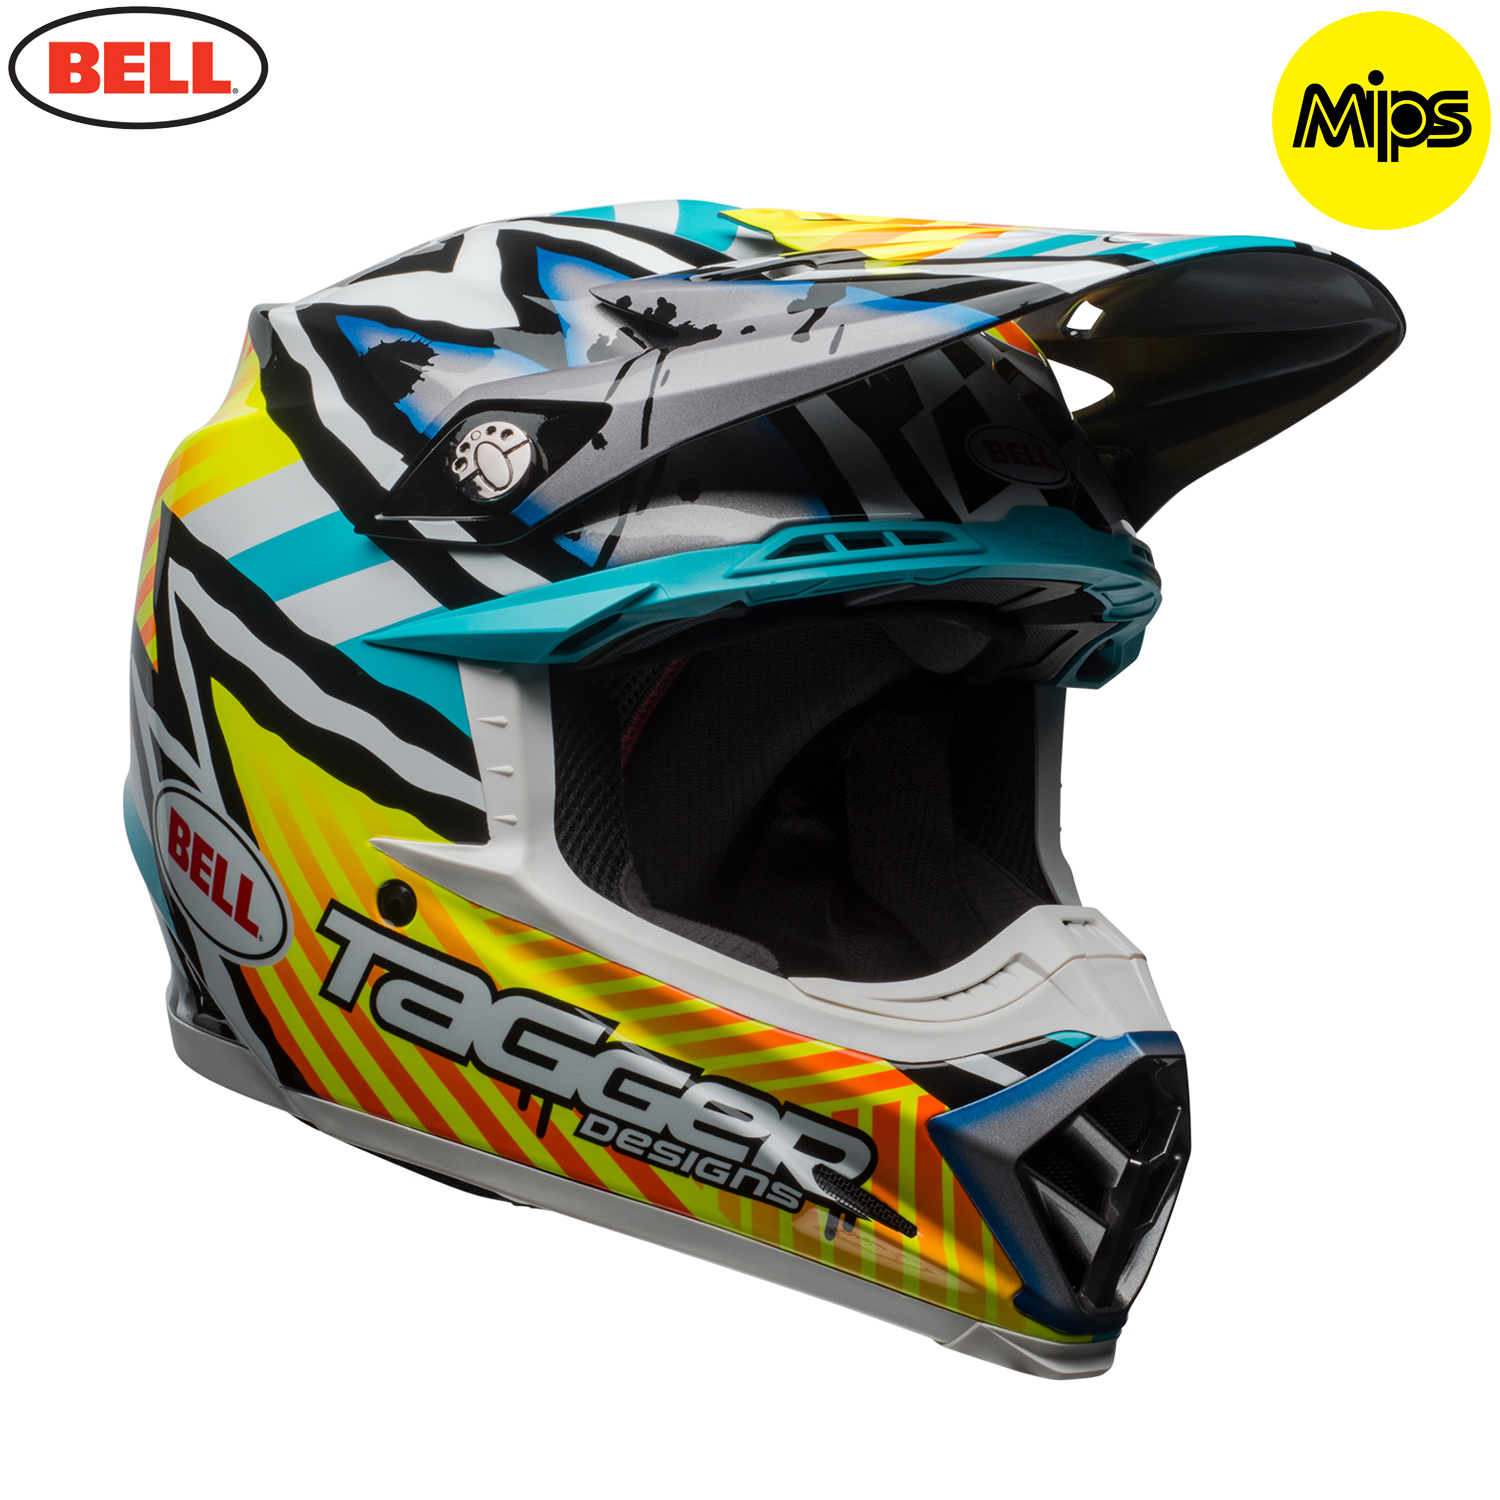 2018 bell moto 9 mips helmet tagger yellow blue white assymetric. Black Bedroom Furniture Sets. Home Design Ideas